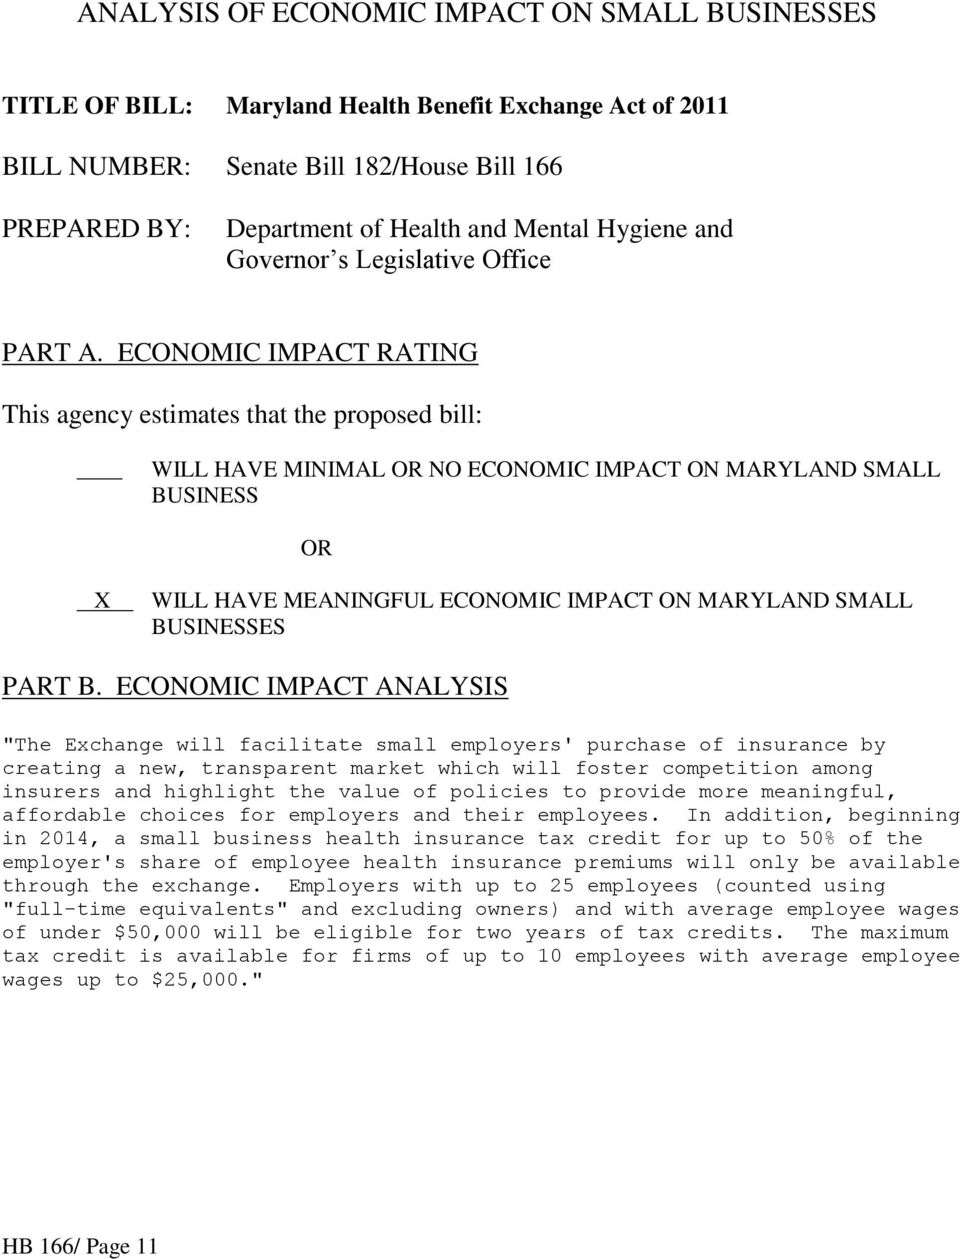 ECONOMIC IMPACT RATING This agency estimates that the proposed bill: WILL HAVE MINIMAL OR NO ECONOMIC IMPACT ON MARYLAND SMALL BUSINESS OR X WILL HAVE MEANINGFUL ECONOMIC IMPACT ON MARYLAND SMALL